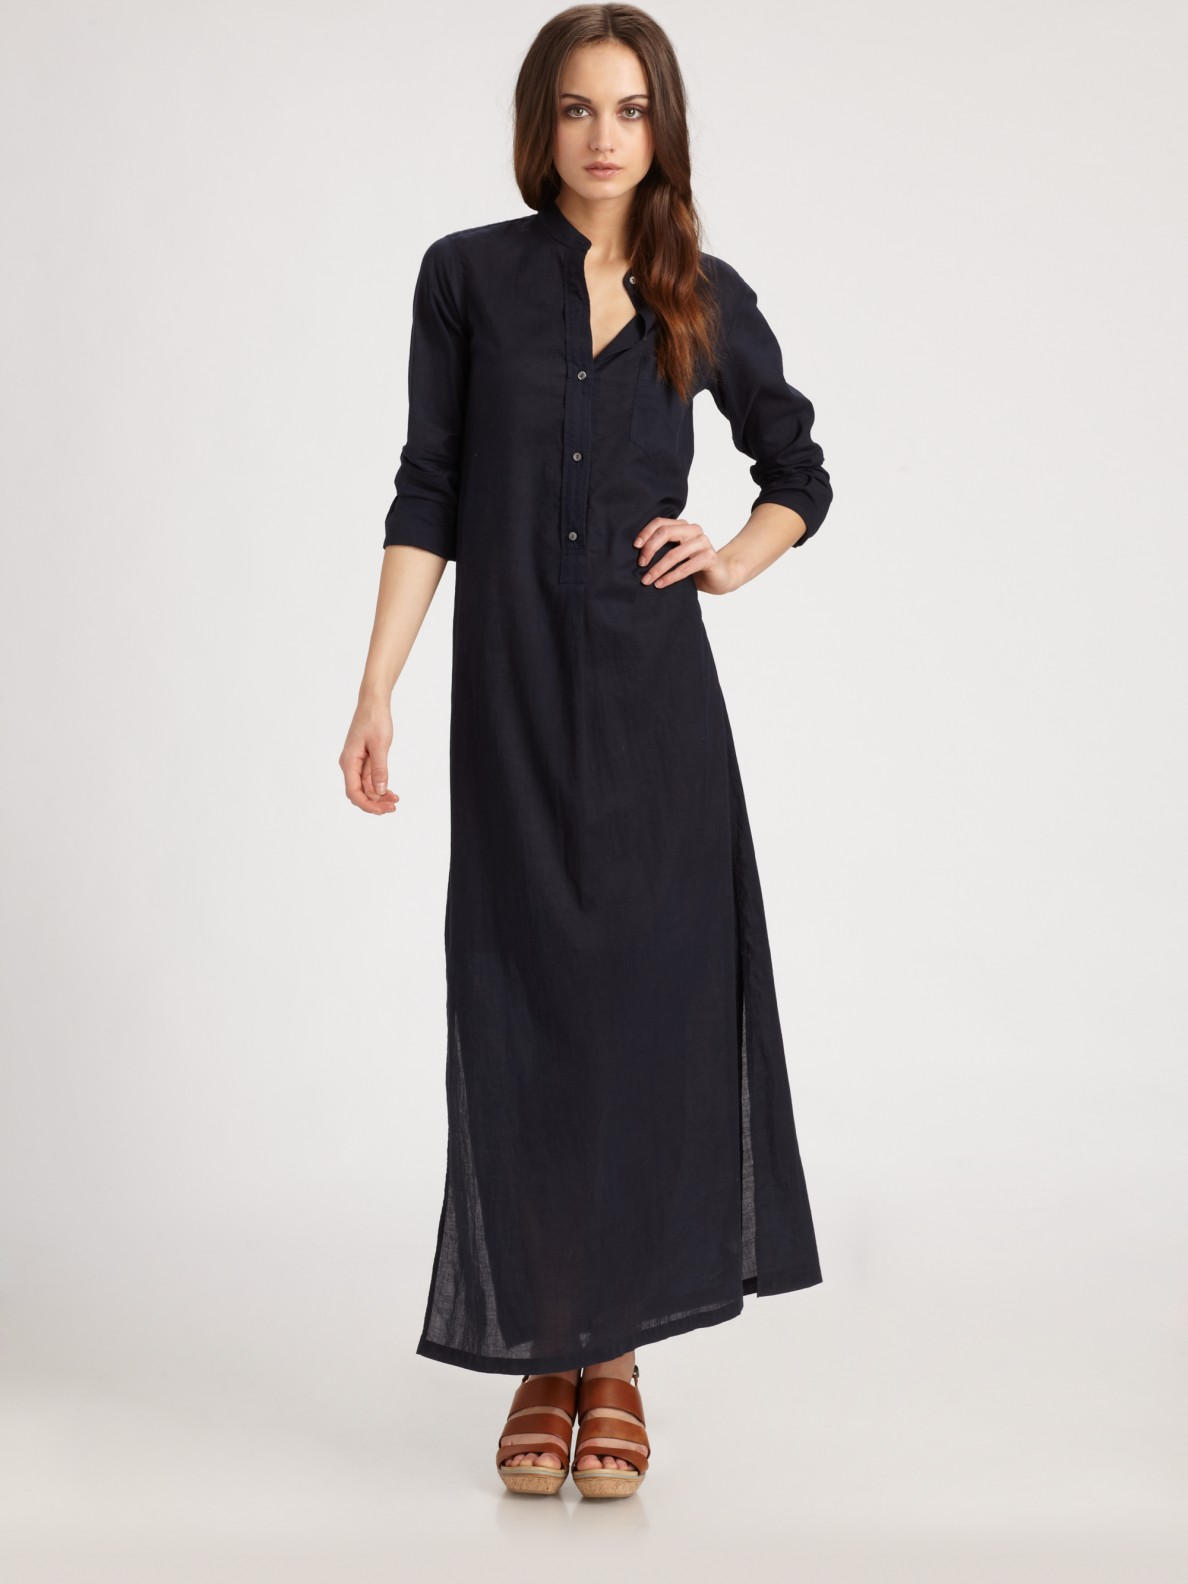 Lyst Vince Long Cotton Shirtdress In Black